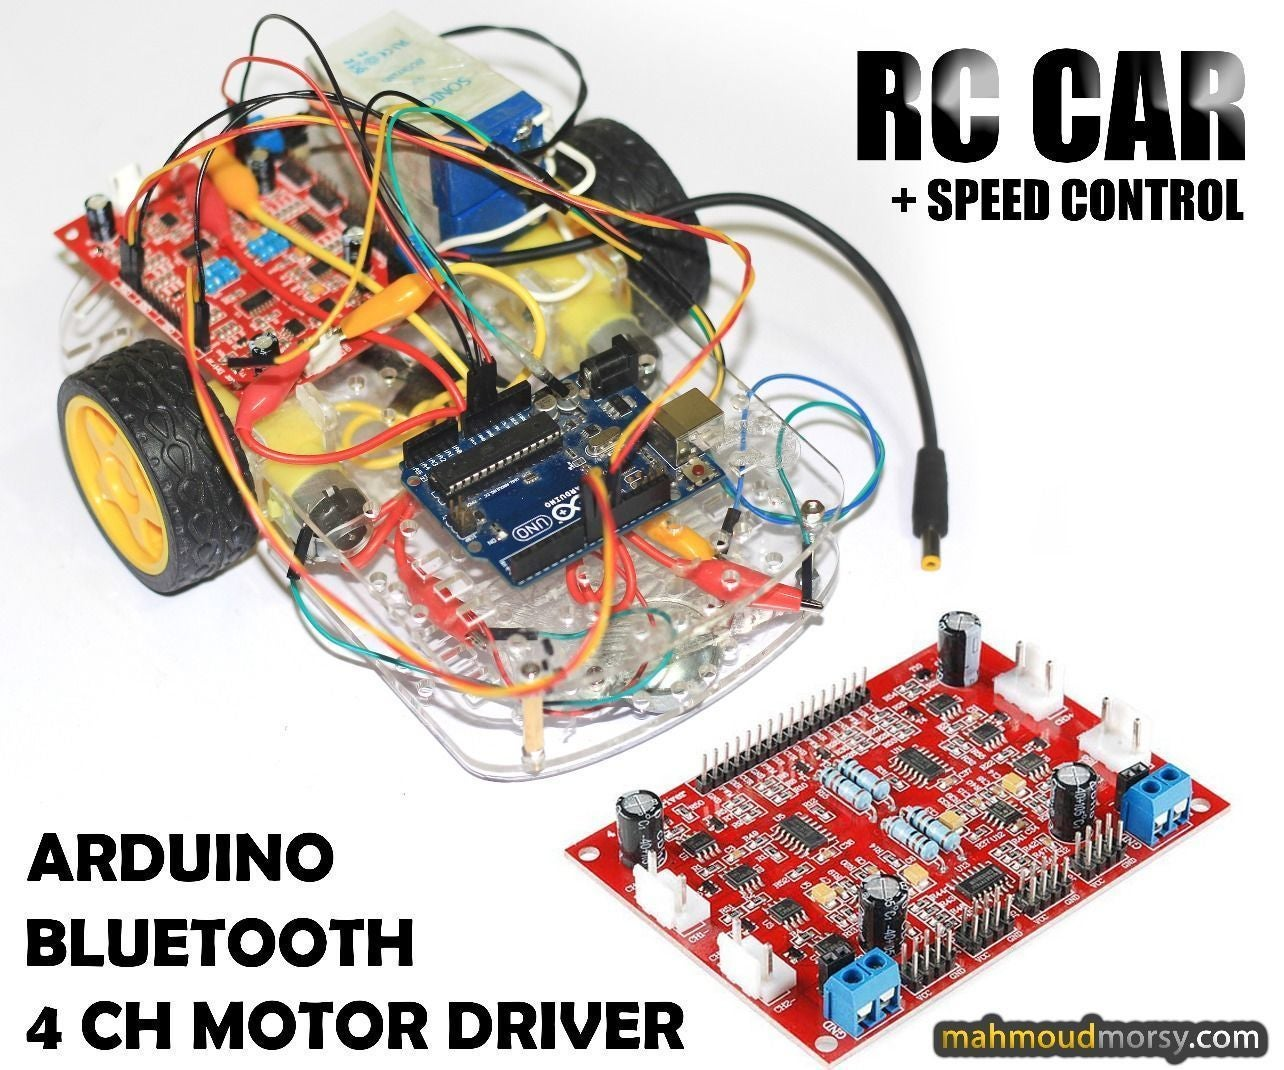 Speed Controlled Rc Car Using 4 Ch Motor Driver Controller Wire Race Wiring Arduino Bluetooth 12 Steps